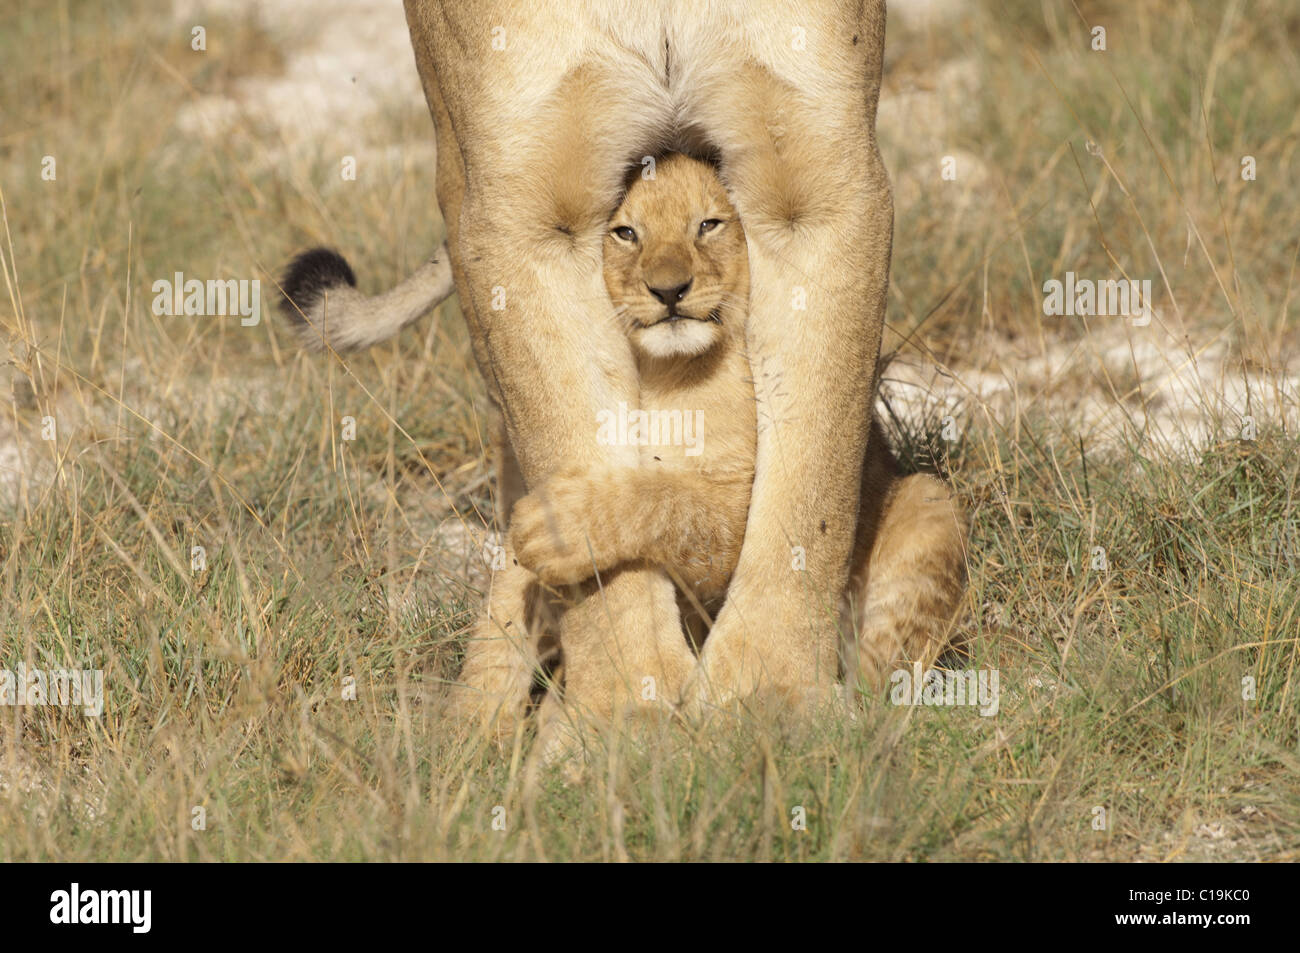 stock photo of a lion cub standing under her moms legs